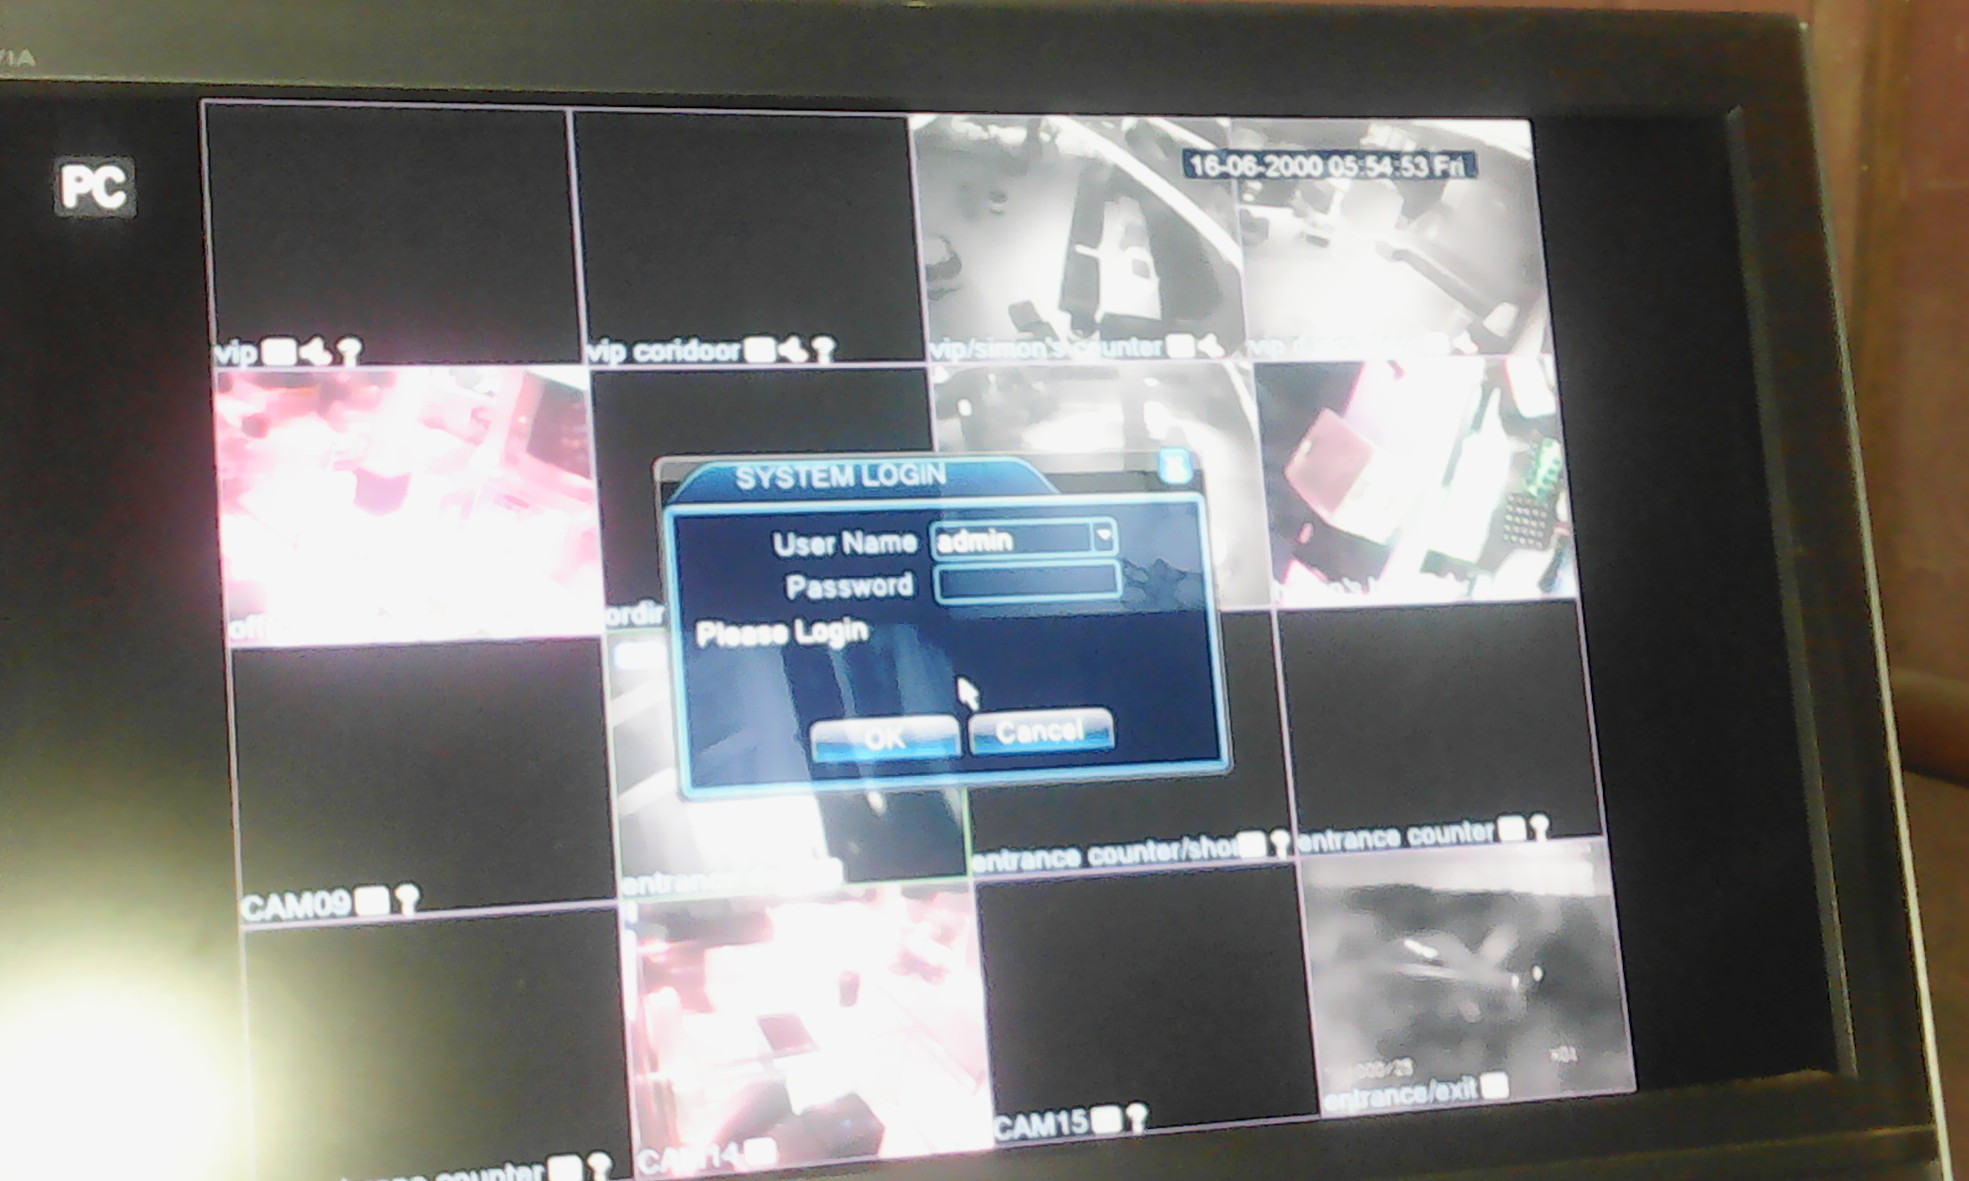 Reset DVR password to Factory default - Digital Video Recorders